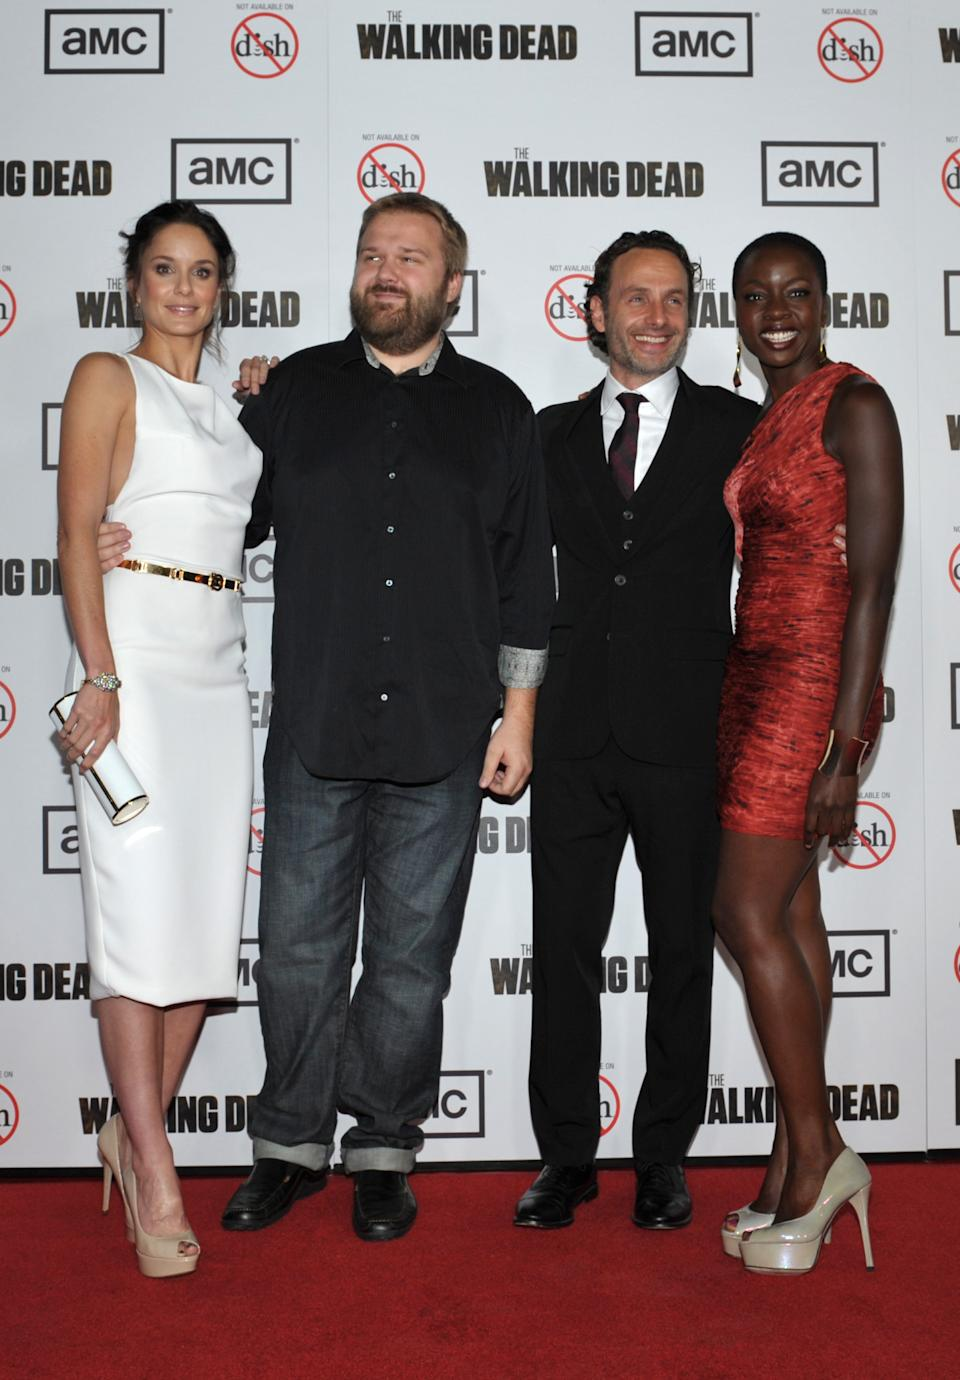 "FILE - In this Thursday, Oct. 4, 2012 file photo provided by AMC, from left, Sarah Wayne Callies, Robert Kirkman, Andrew Lincoln, and Danai Gurira attend the premiere of ""The Walking Dead"" at Universal Studios, in Los Angeles. (AP Photo/AMC, John Shearer)"